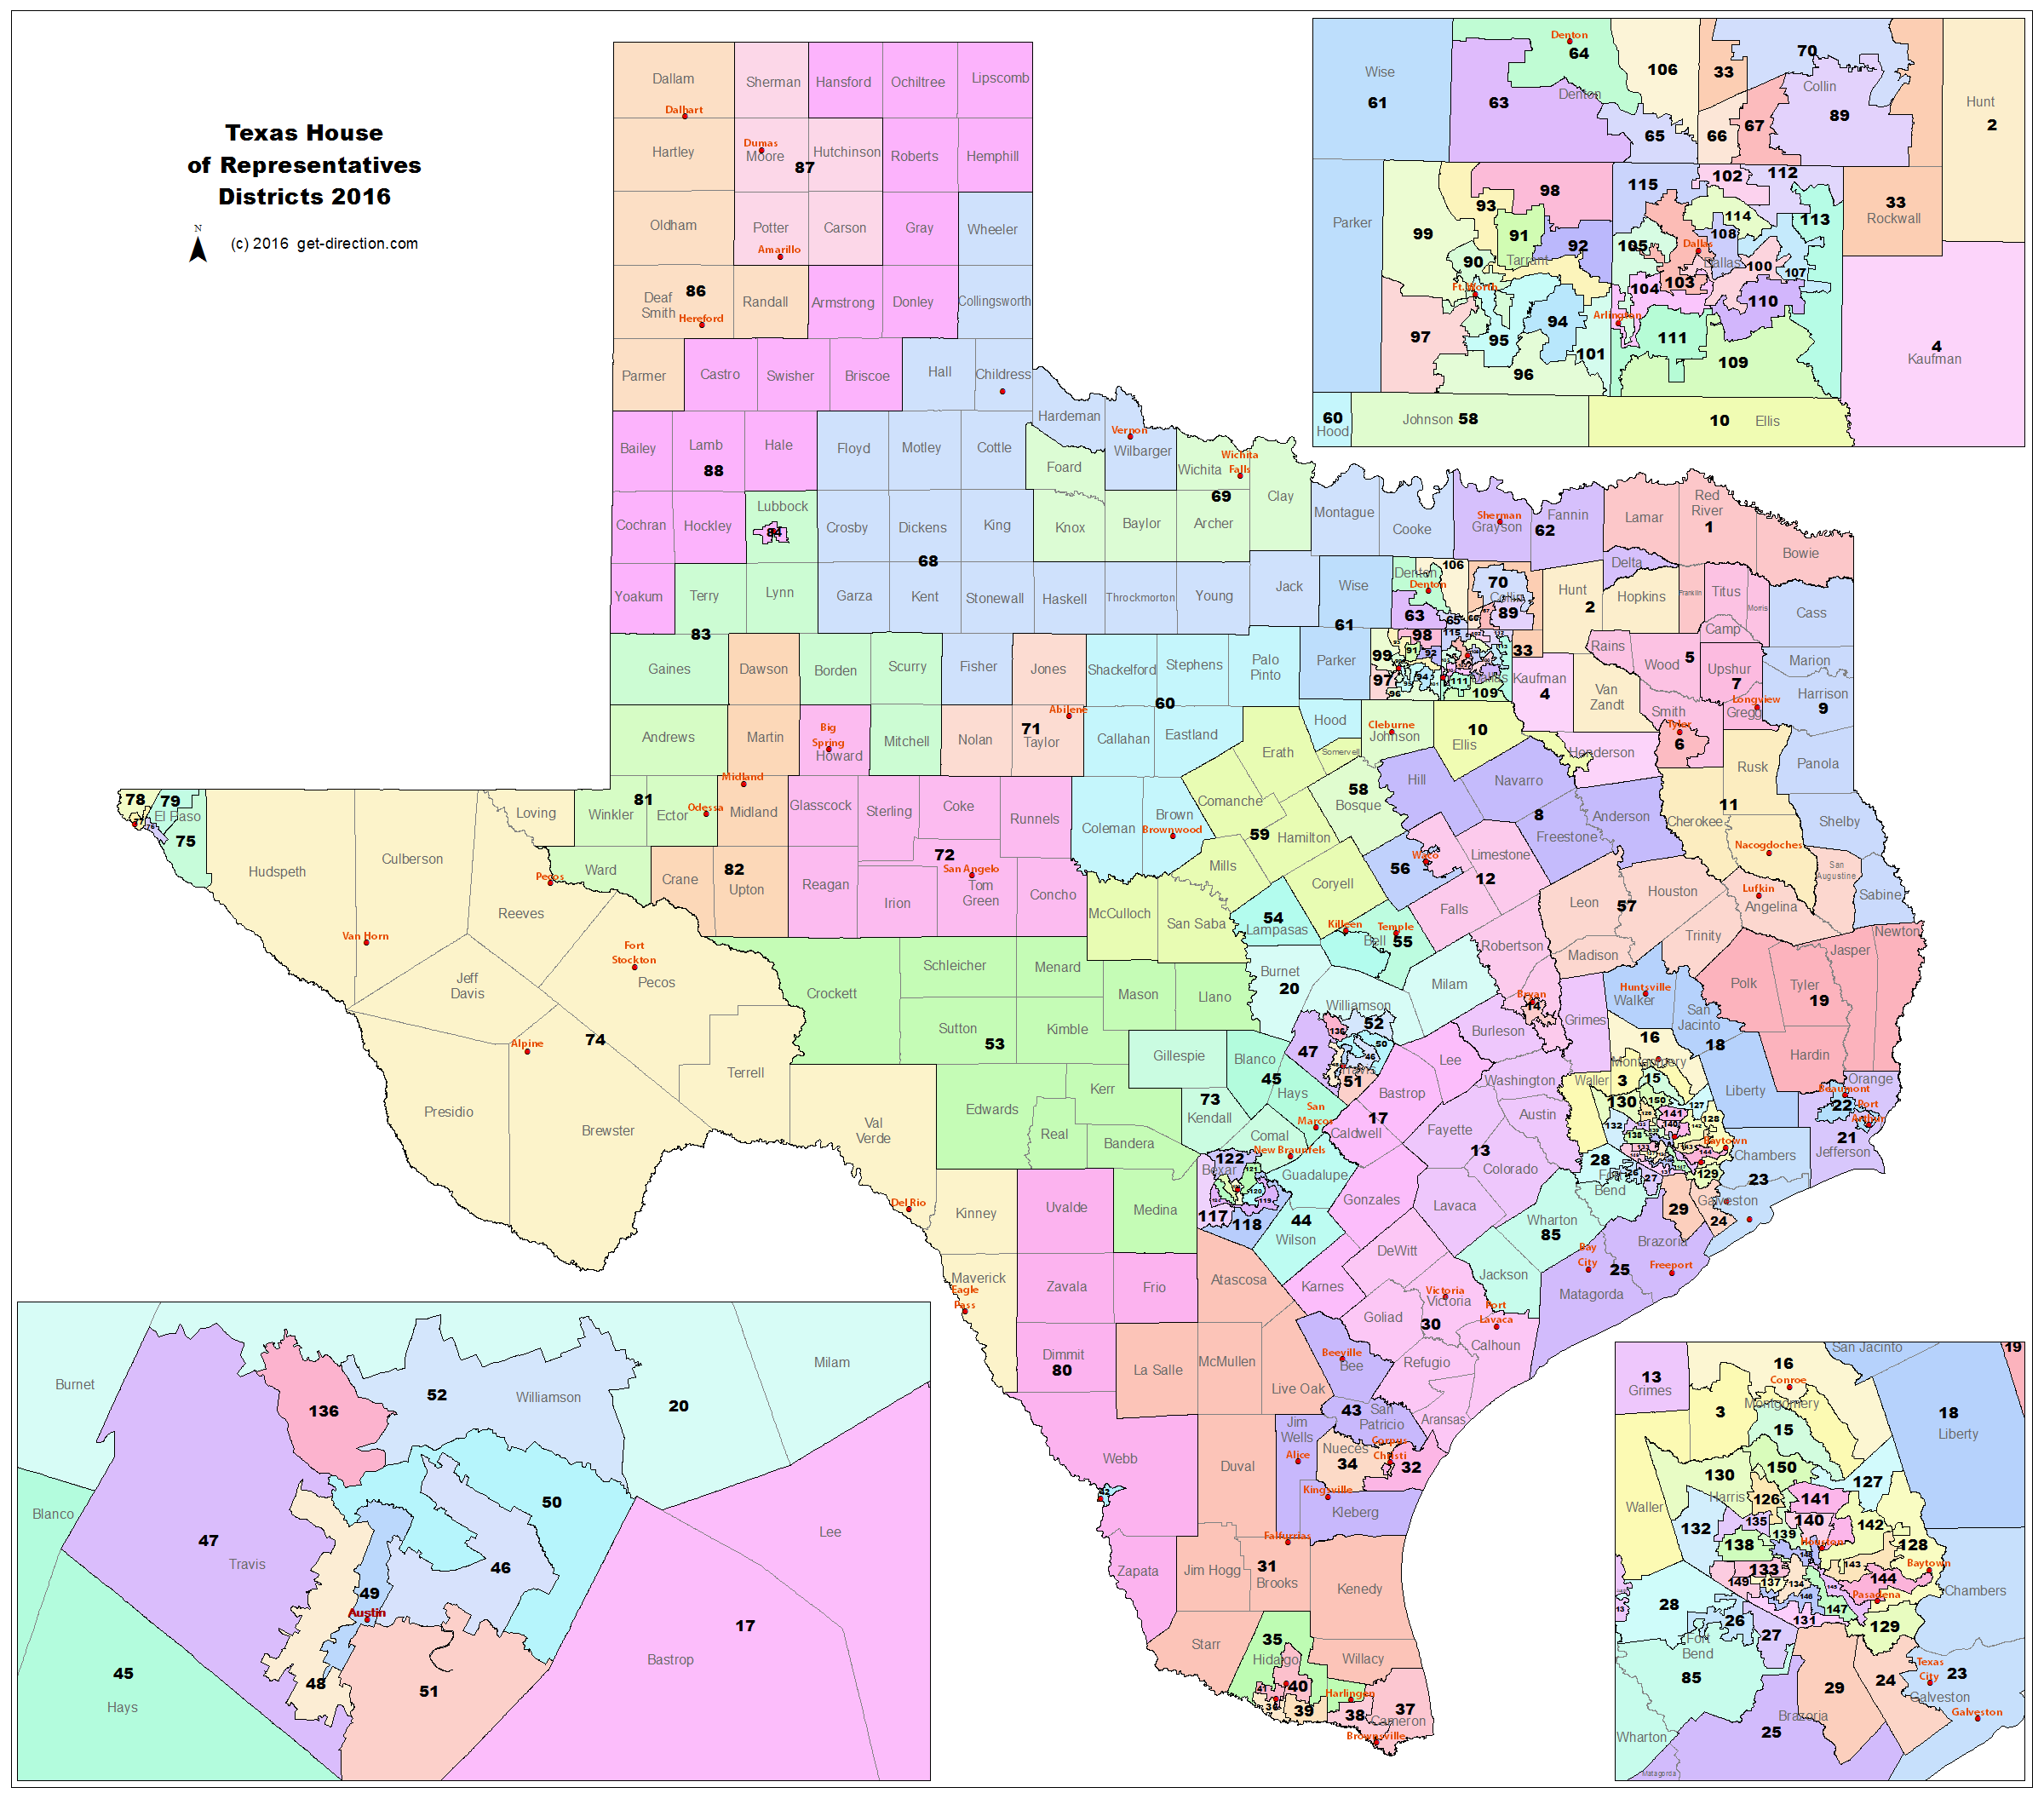 texas-house-of-representatives-districts-2016.png